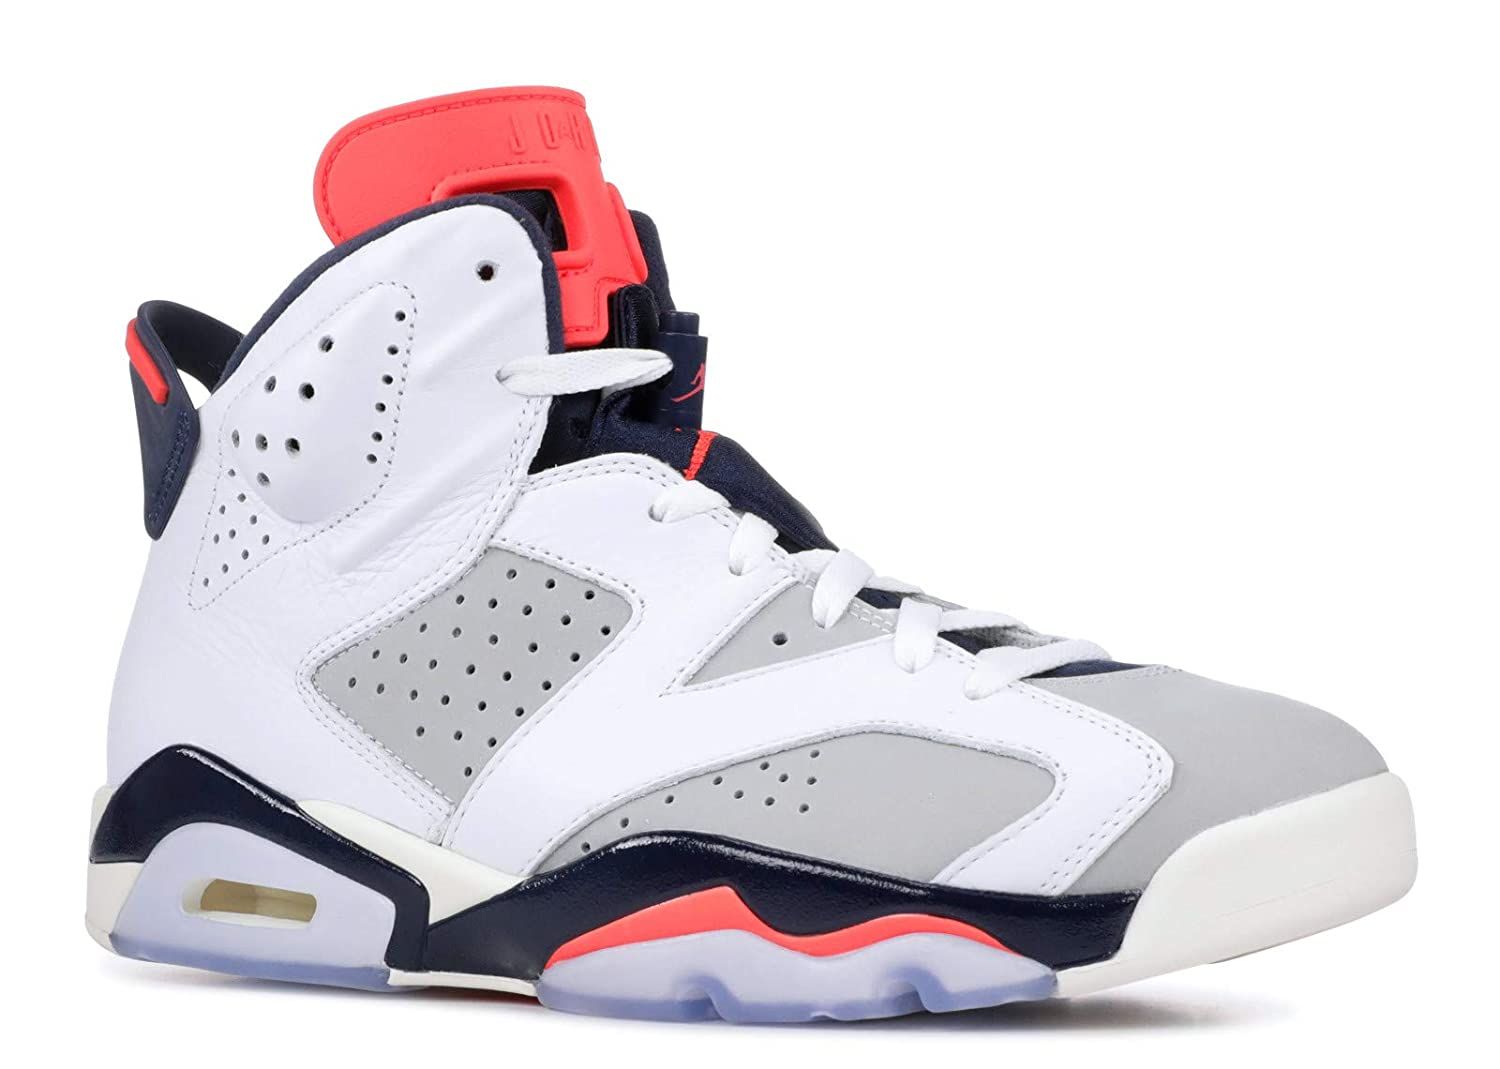 acheter 8afb0 99b93 Nike Jordan Retro 6 - Men's (10, White/Infrared 23/Neutral Grey/White/Sail)